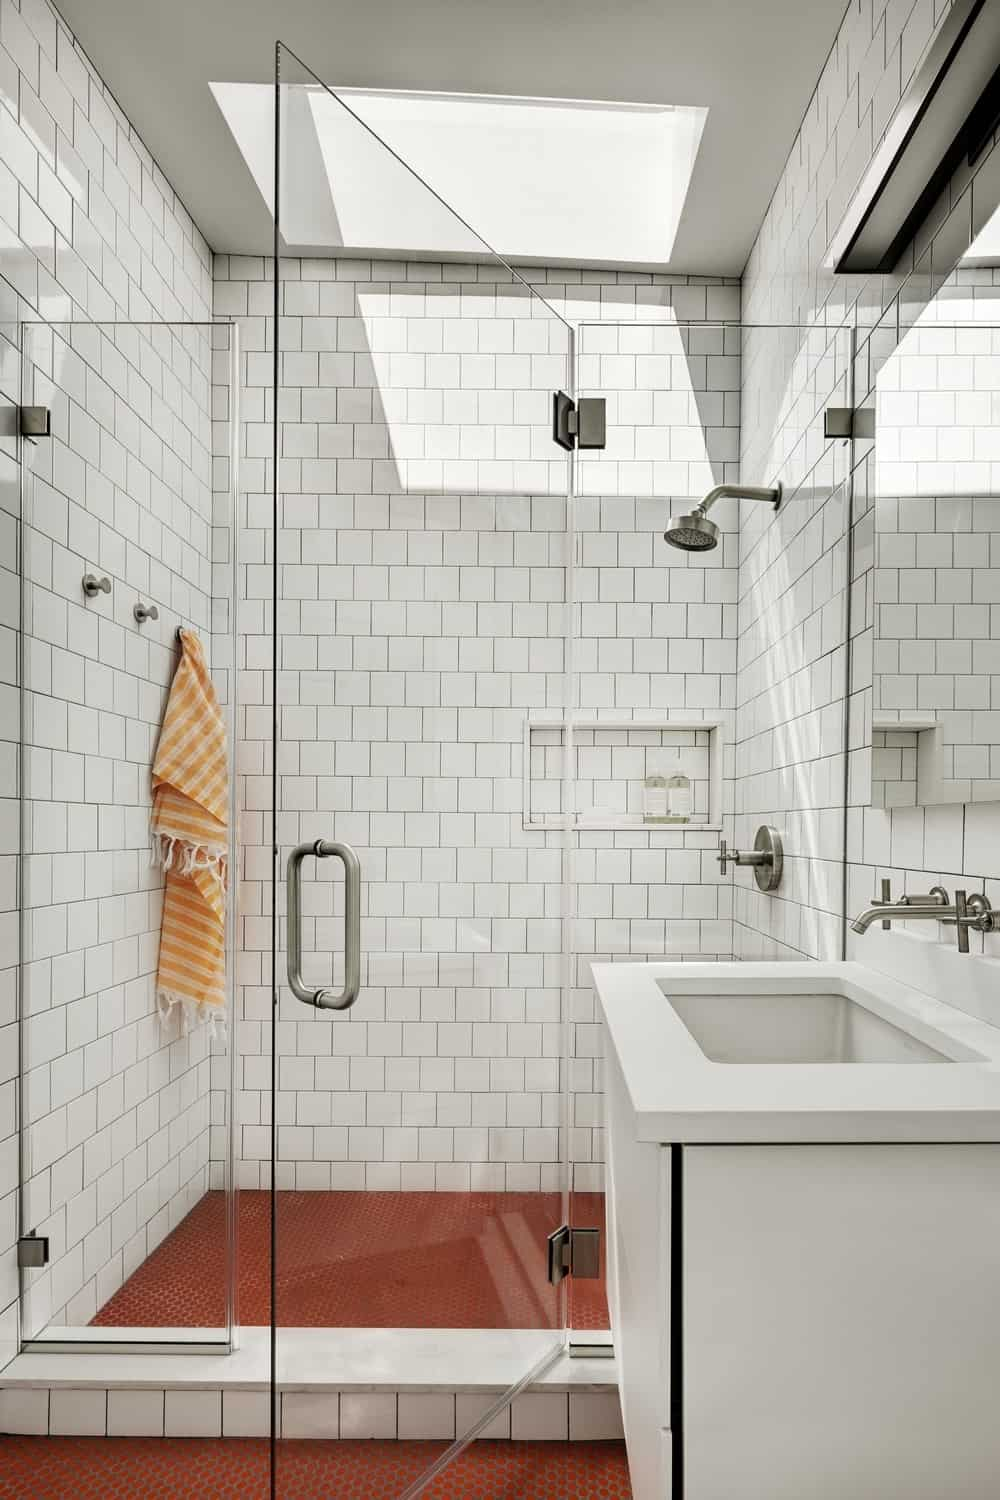 A close up look at this primary bathroom's shower room surrounded by tiles walls and red floors.